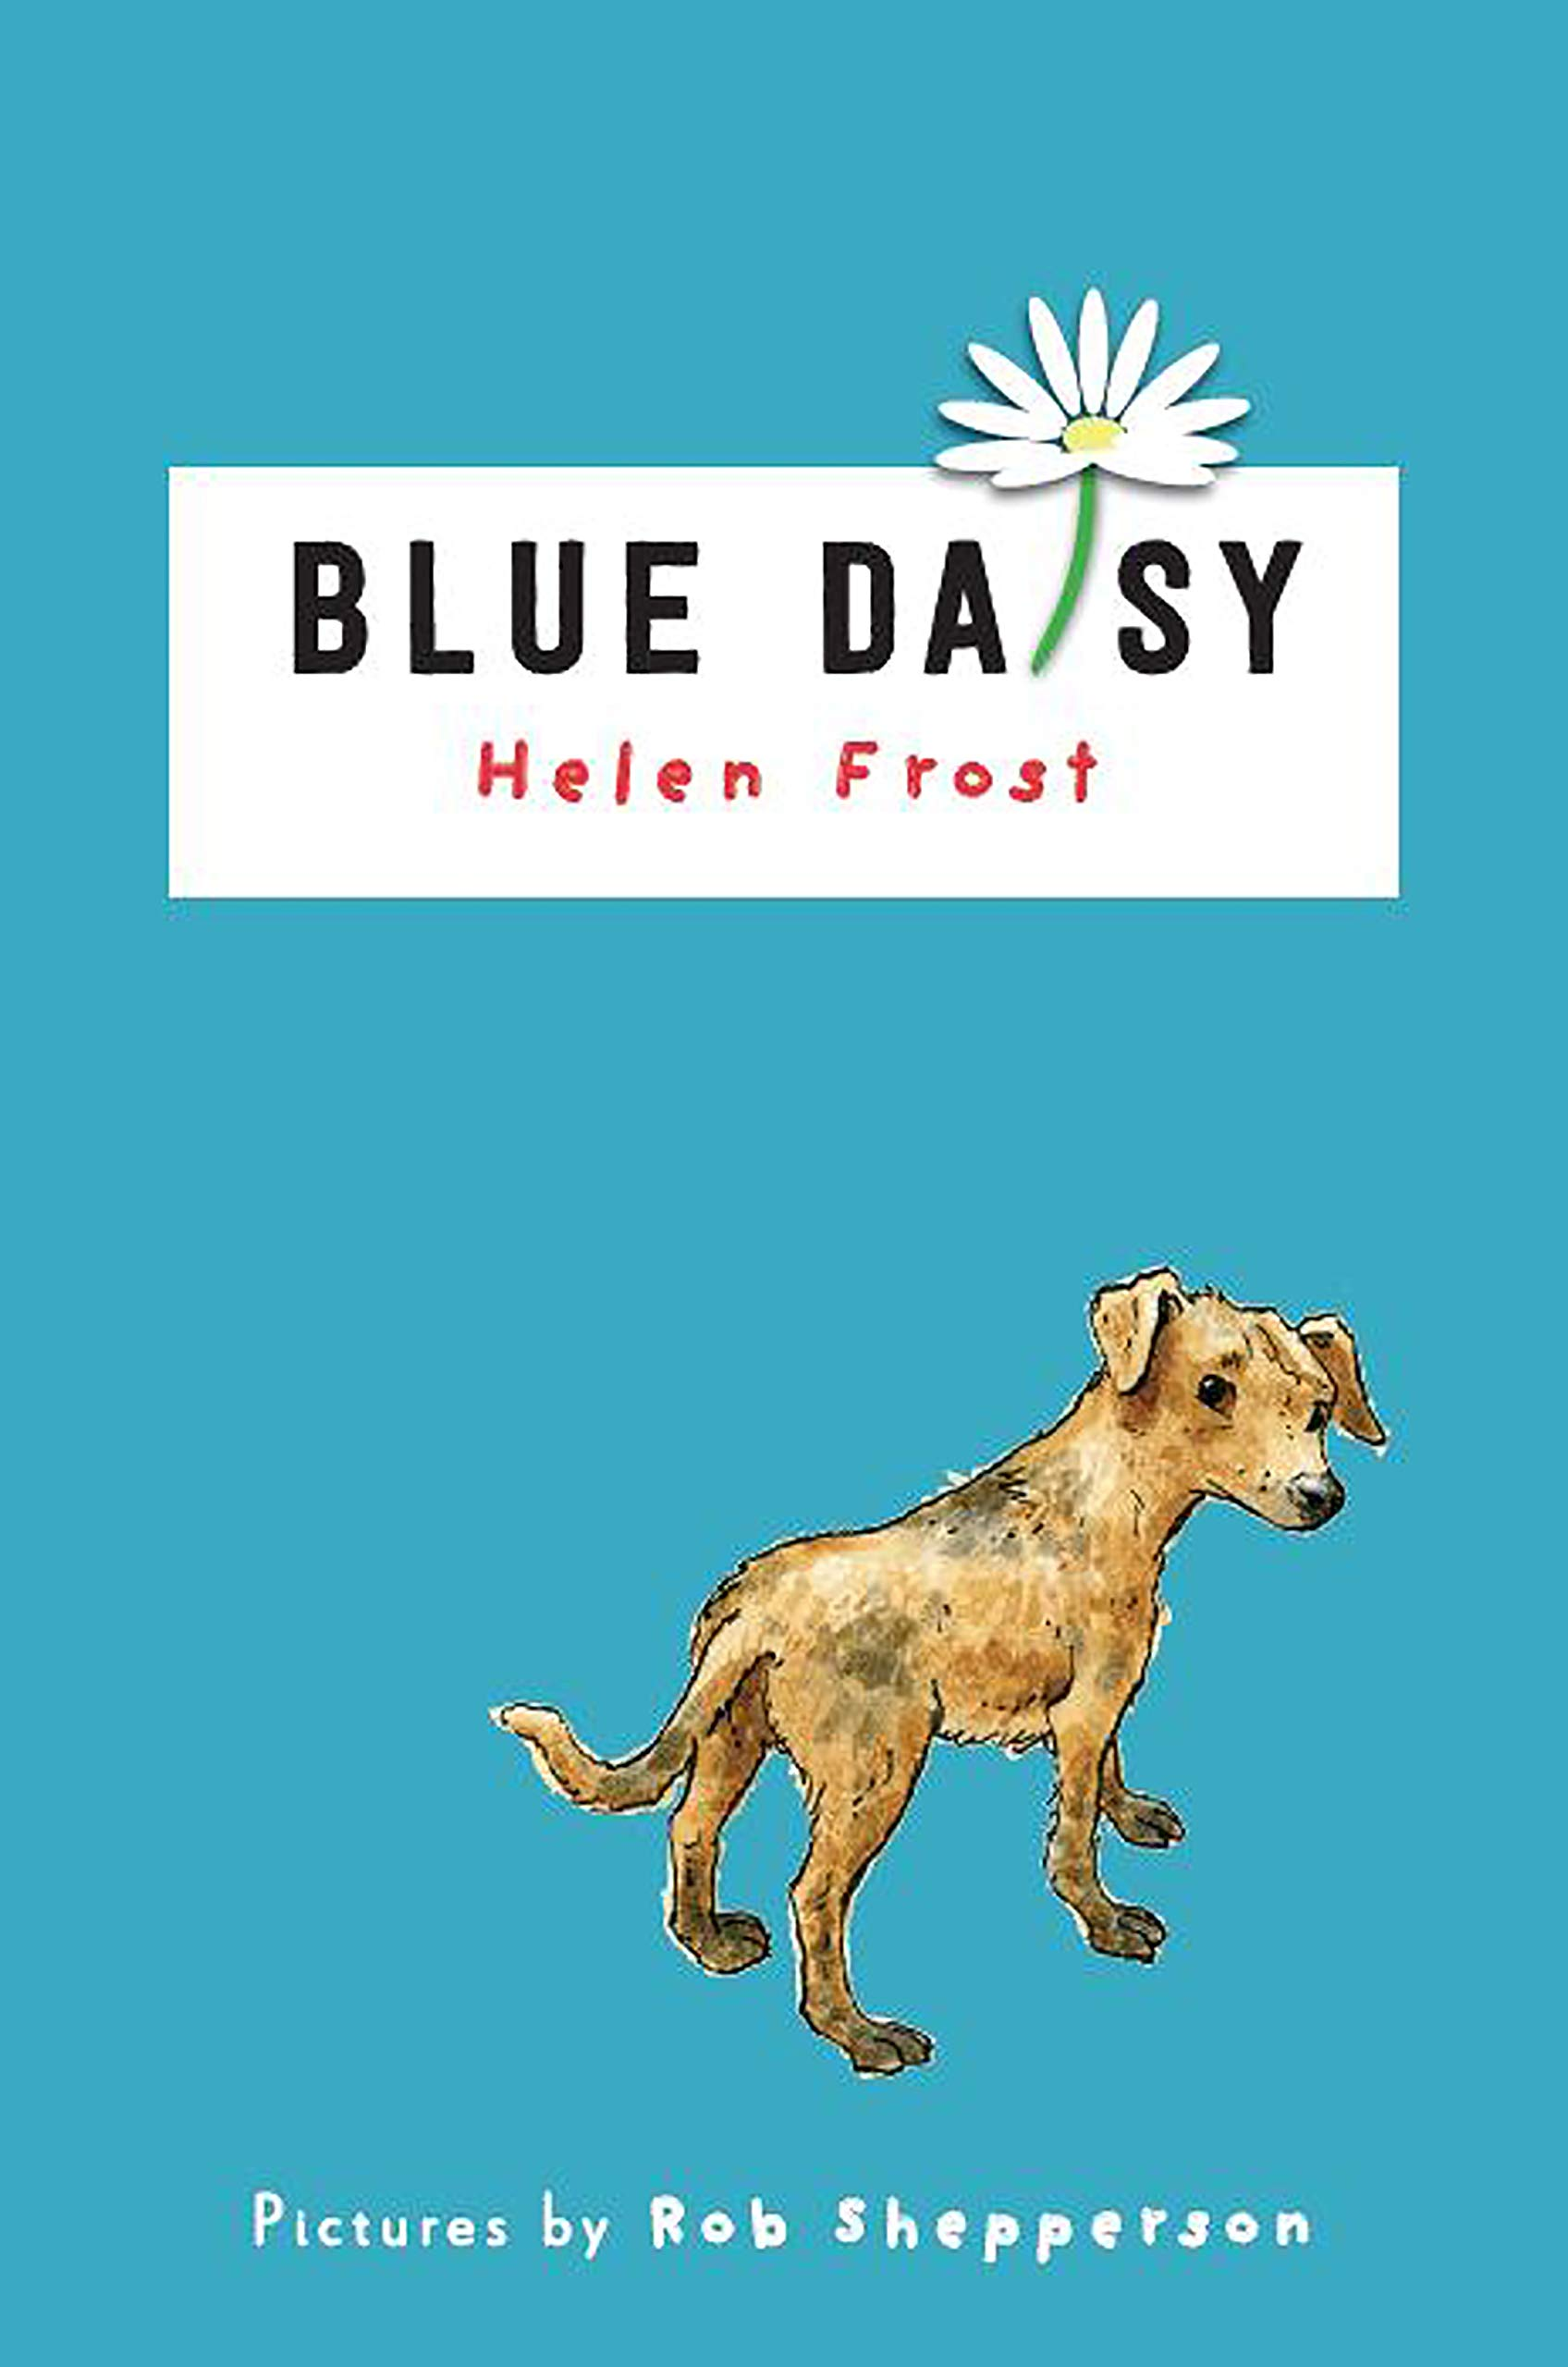 Amazon.com: Blue Daisy (9780823444144): Helen Frost, Rob ...